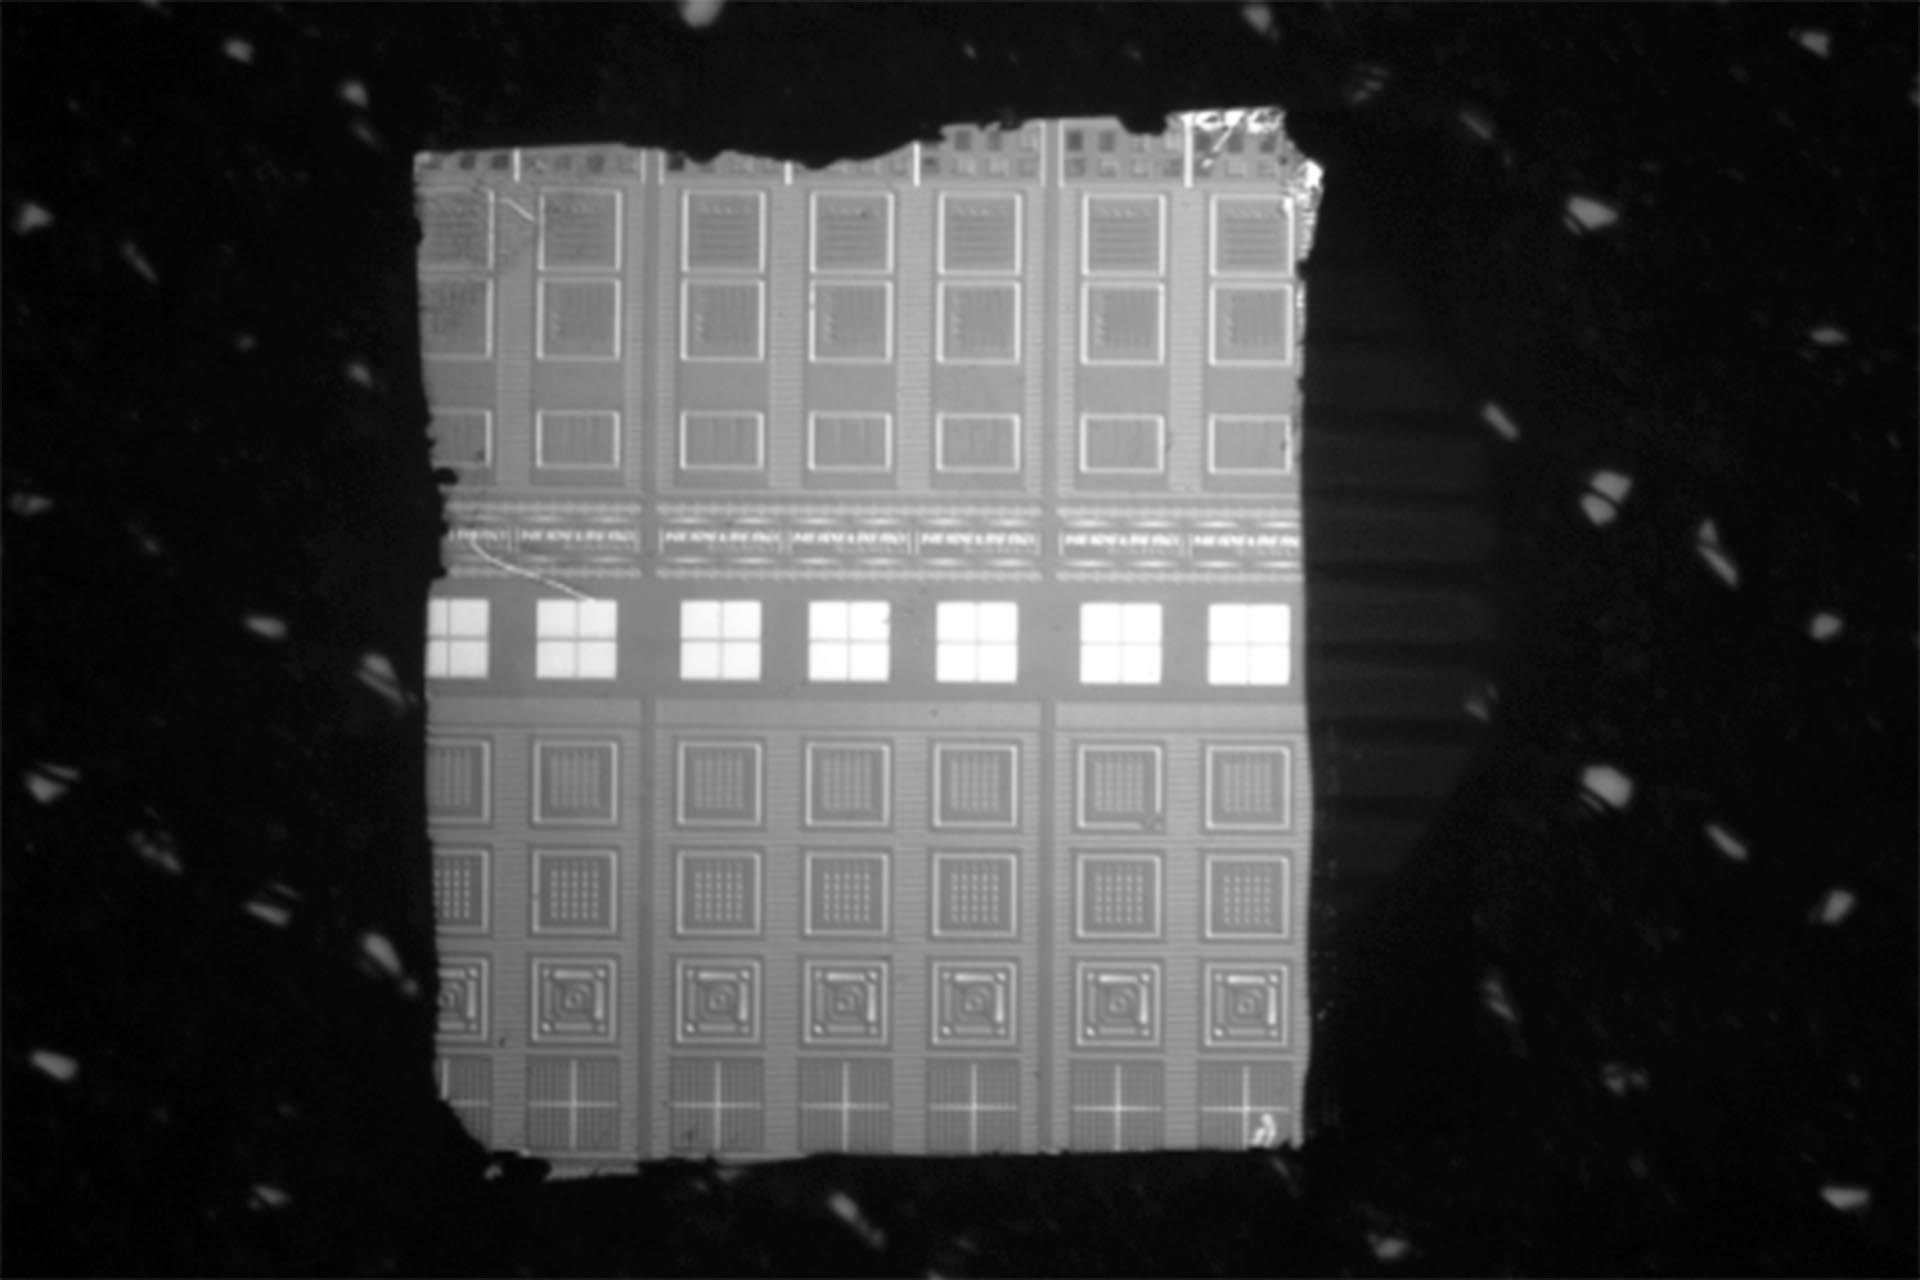 Successfully exposed wafer piece of a few millimeters in each dimension. Thanks to the optical autofocus, the exposure quality is retained even at the uneven edges.